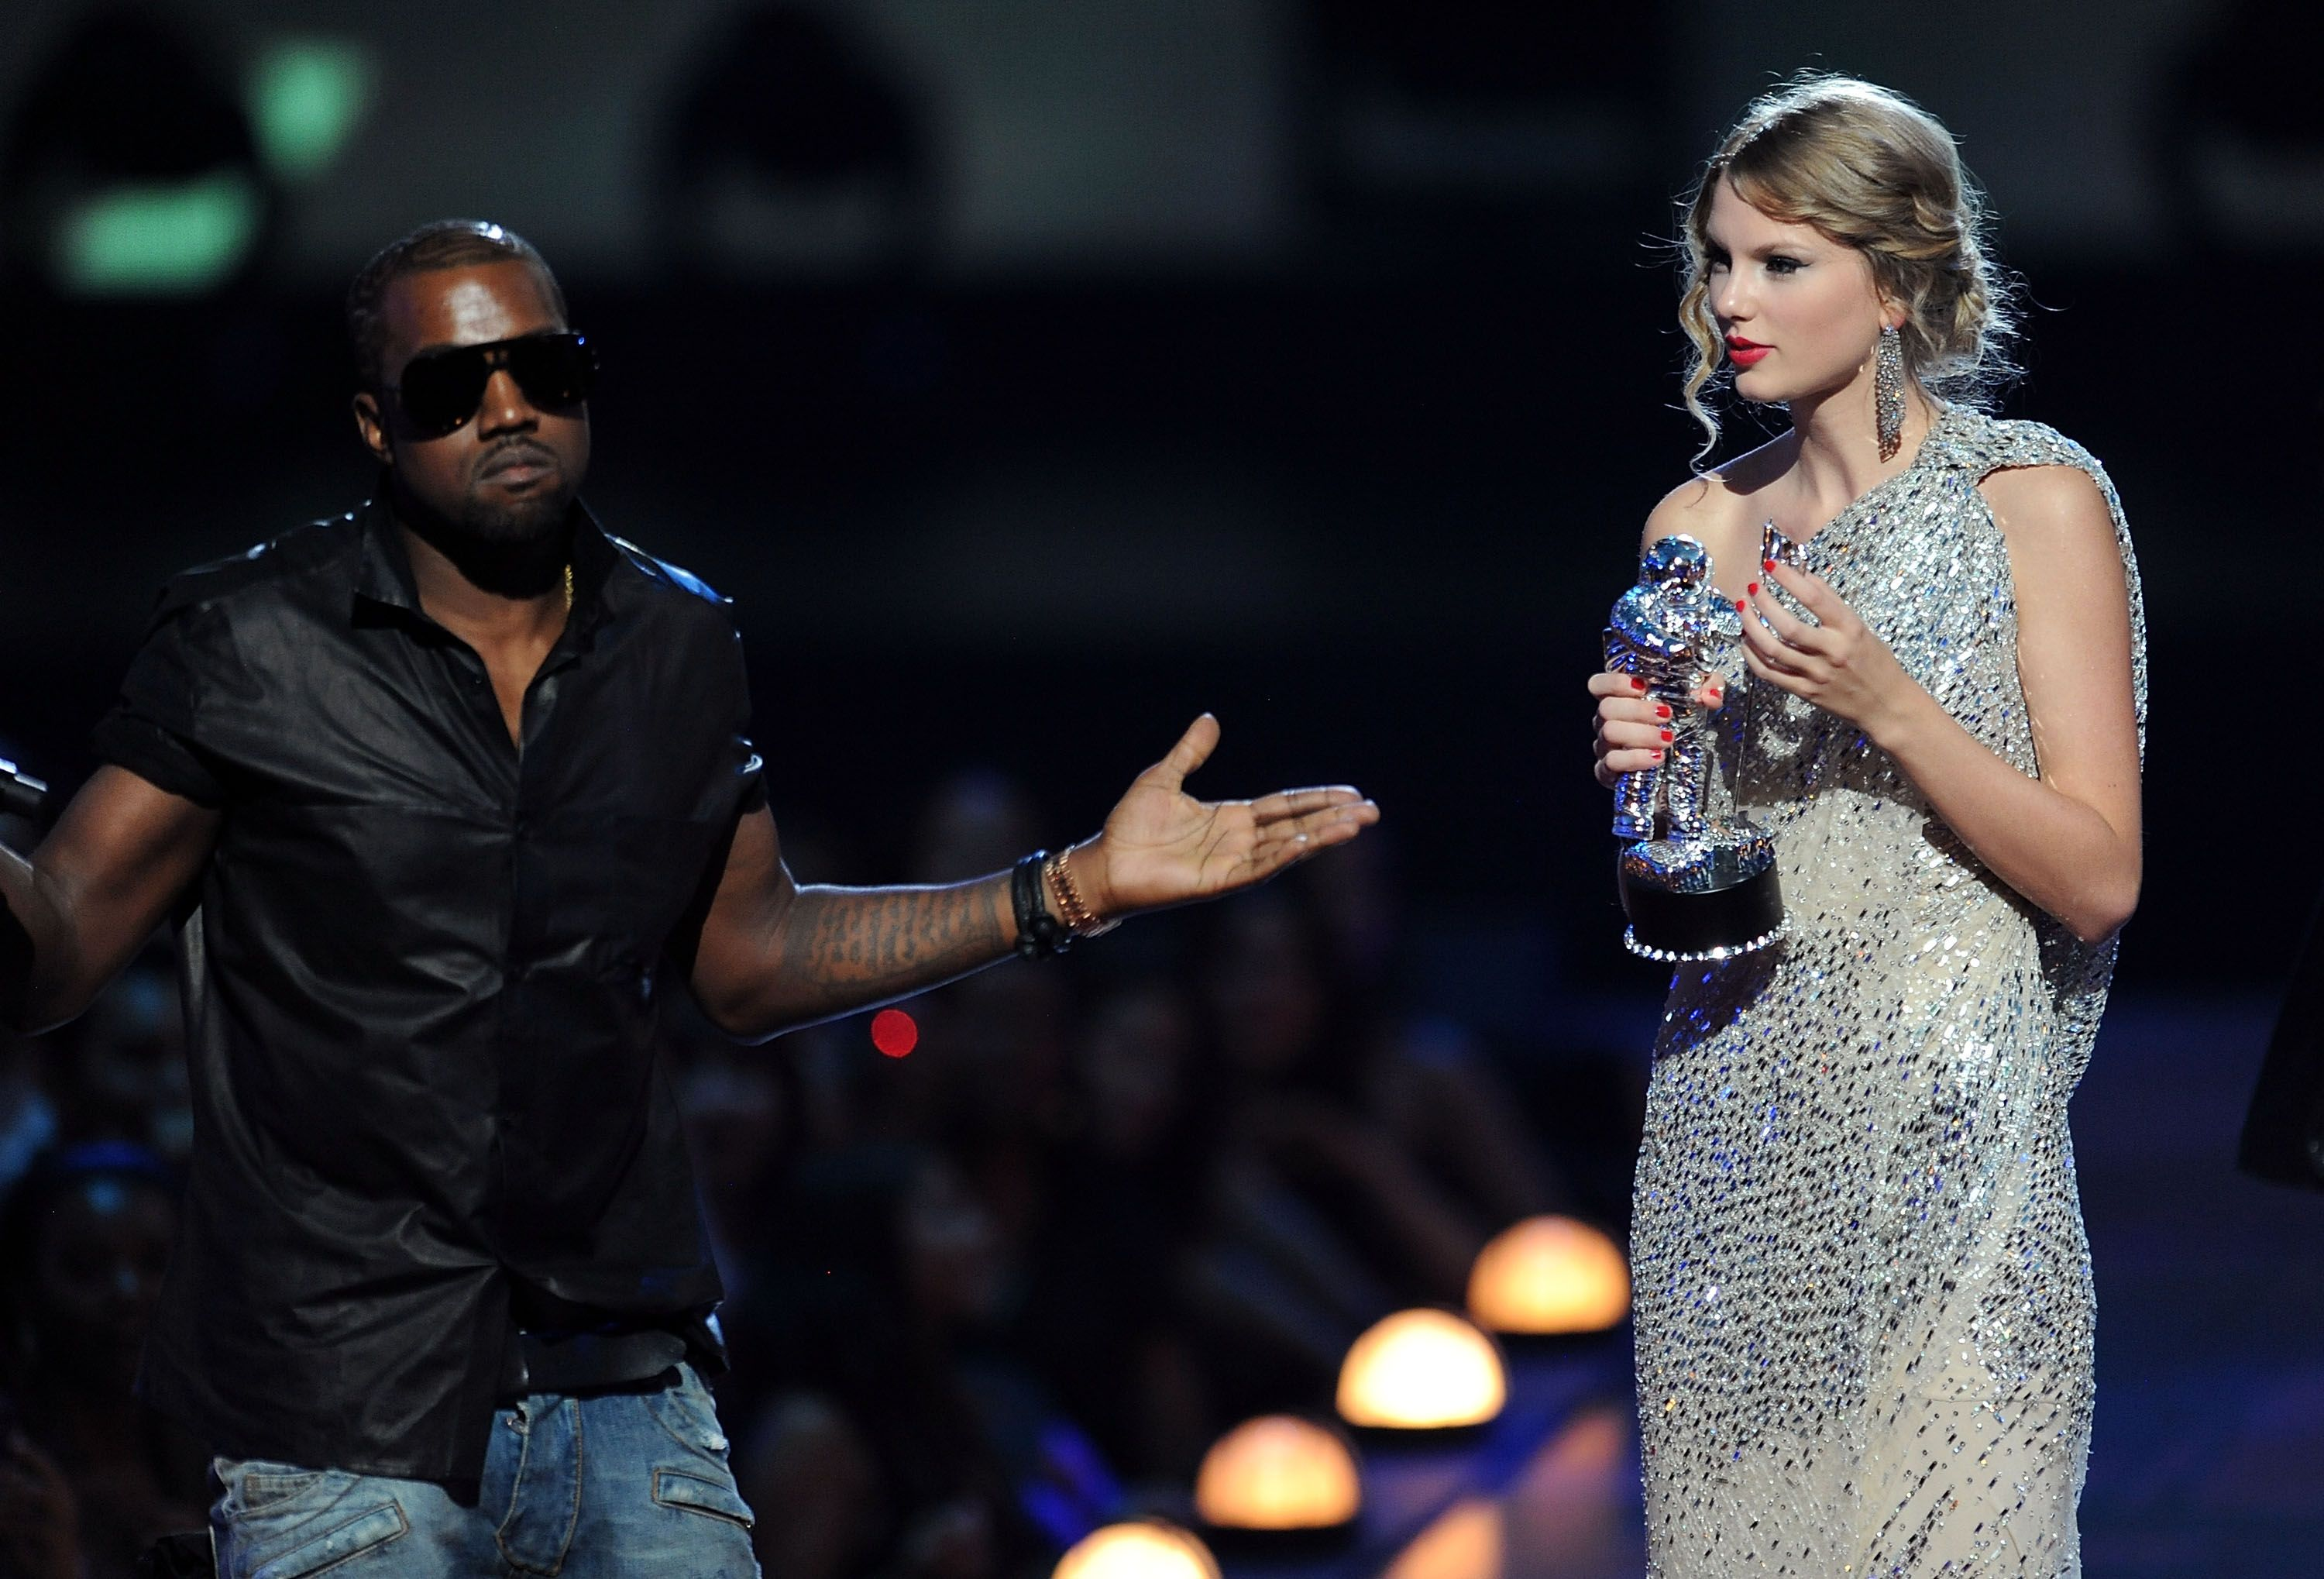 Read Taylor Swift's Diary Entry About Kanye West VMAs Incident